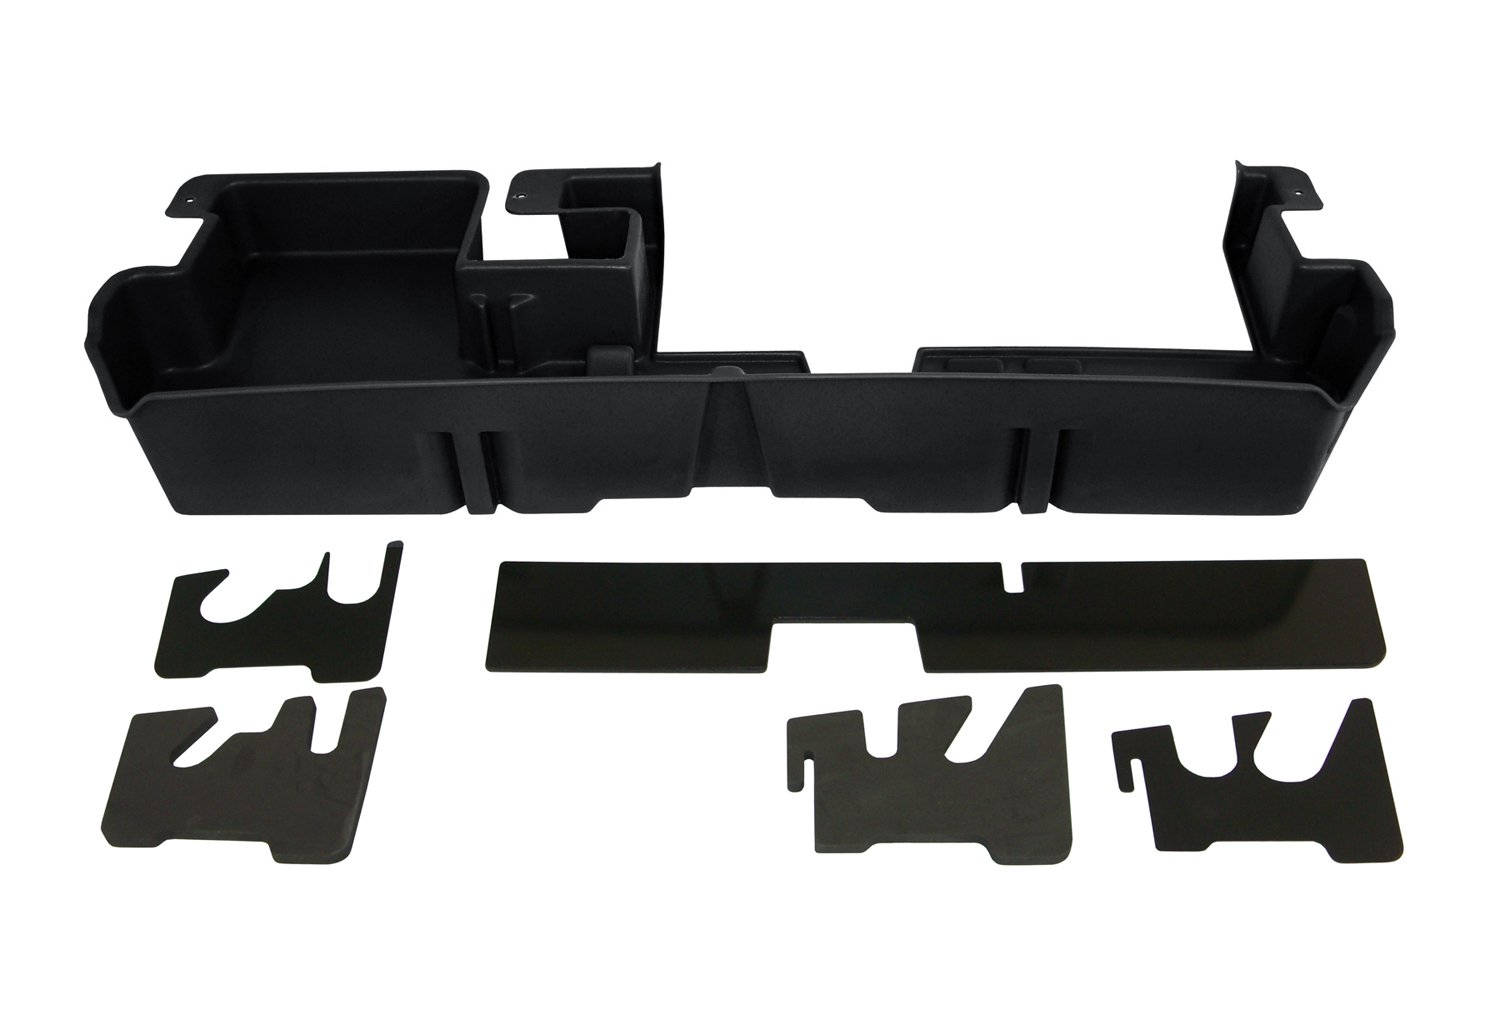 DU-HA Under Seat Storage Fits 07-17 Toyota Tundra Double Cab with Subwoofer, Black, Part #60061